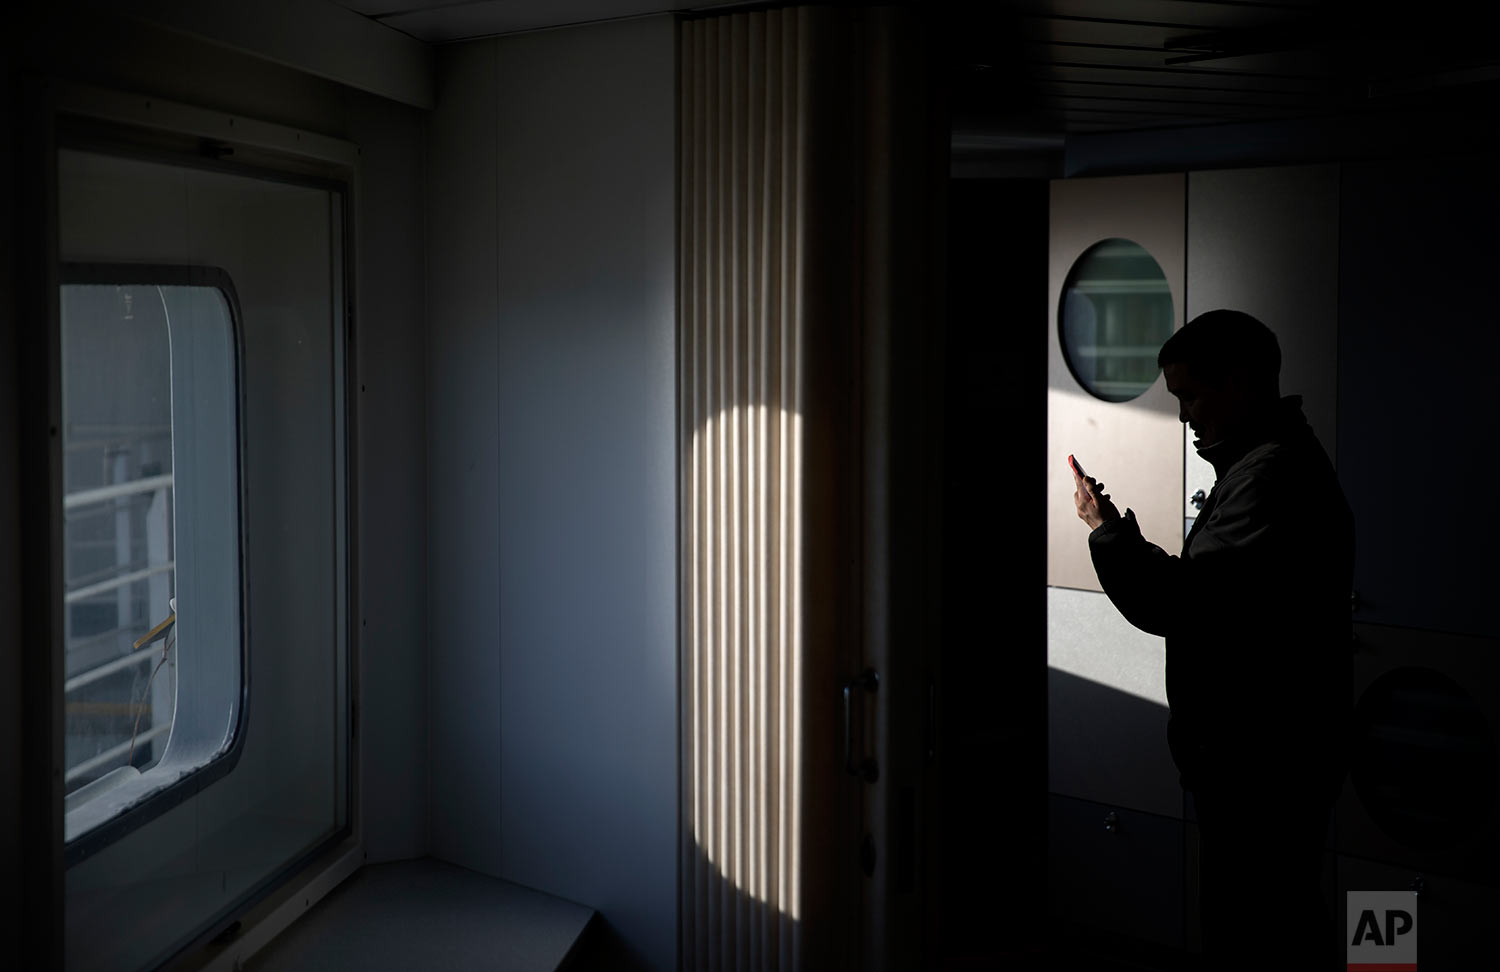 Trainee Maatiusi Manning tries to video chat with his family aboard the Finnish icebreaker MSV Nordica as it traverses the Northwest Passage through the Canadian Arctic Archipelago Wednesday, July 26, 2017. After two weeks at sea the ship's fragile internet connection went down for six days: no emails, no new satellite pictures to preview the route ahead. (AP Photo/David Goldman)